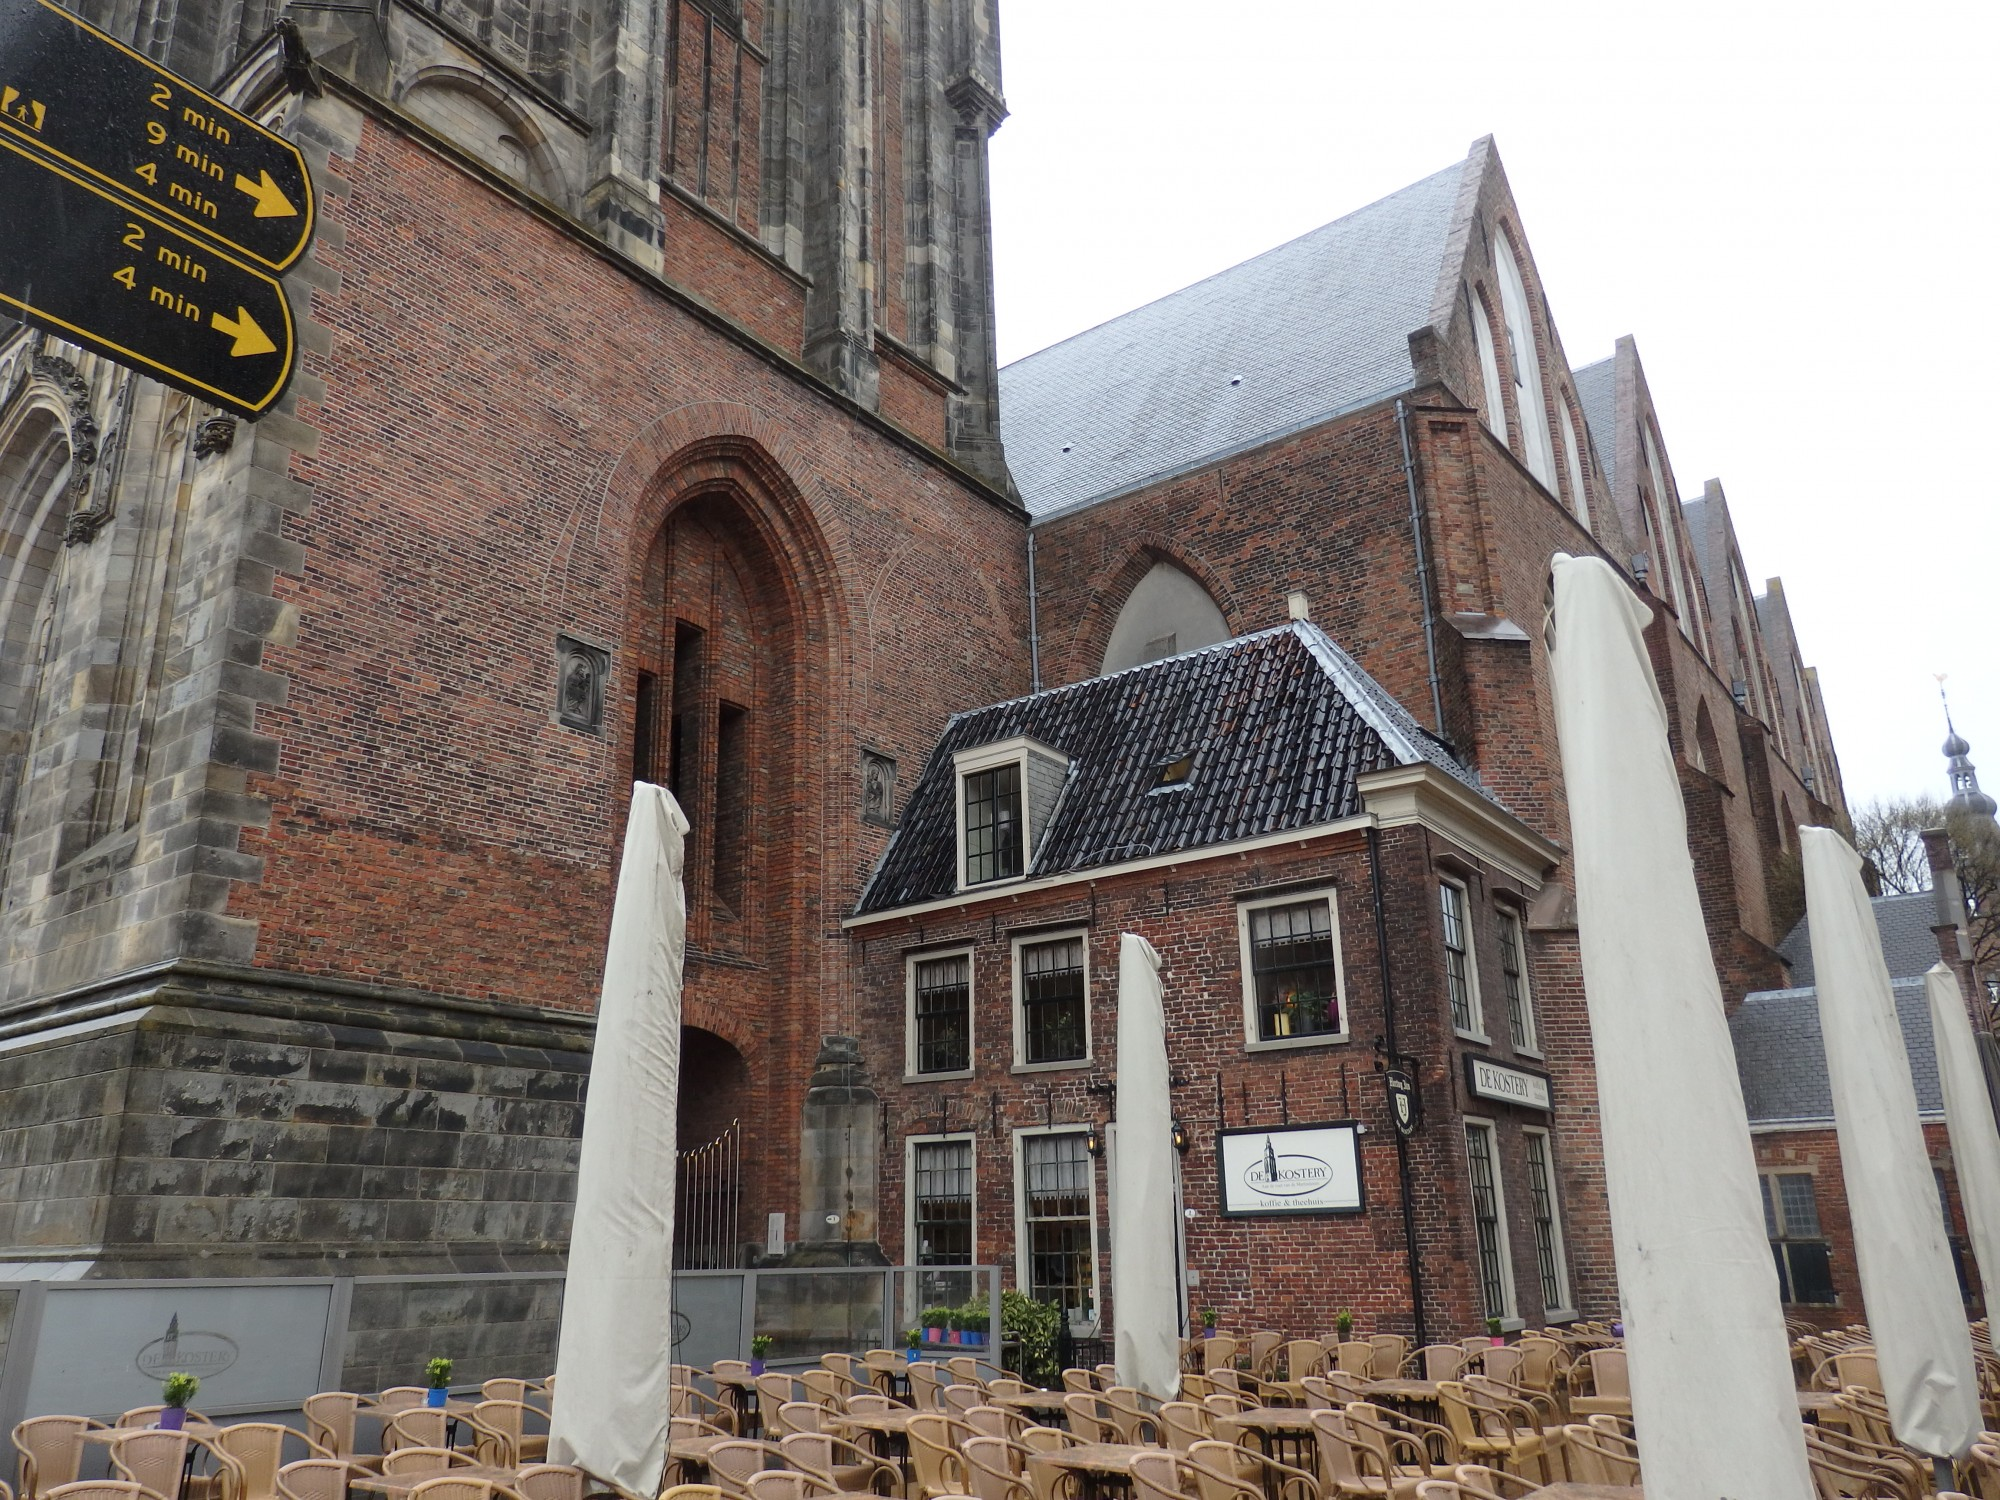 De Kostery, between the Martinitoren on the left and the Martinikerk on the right. Those white things are umbrellas, waiting for better weather.